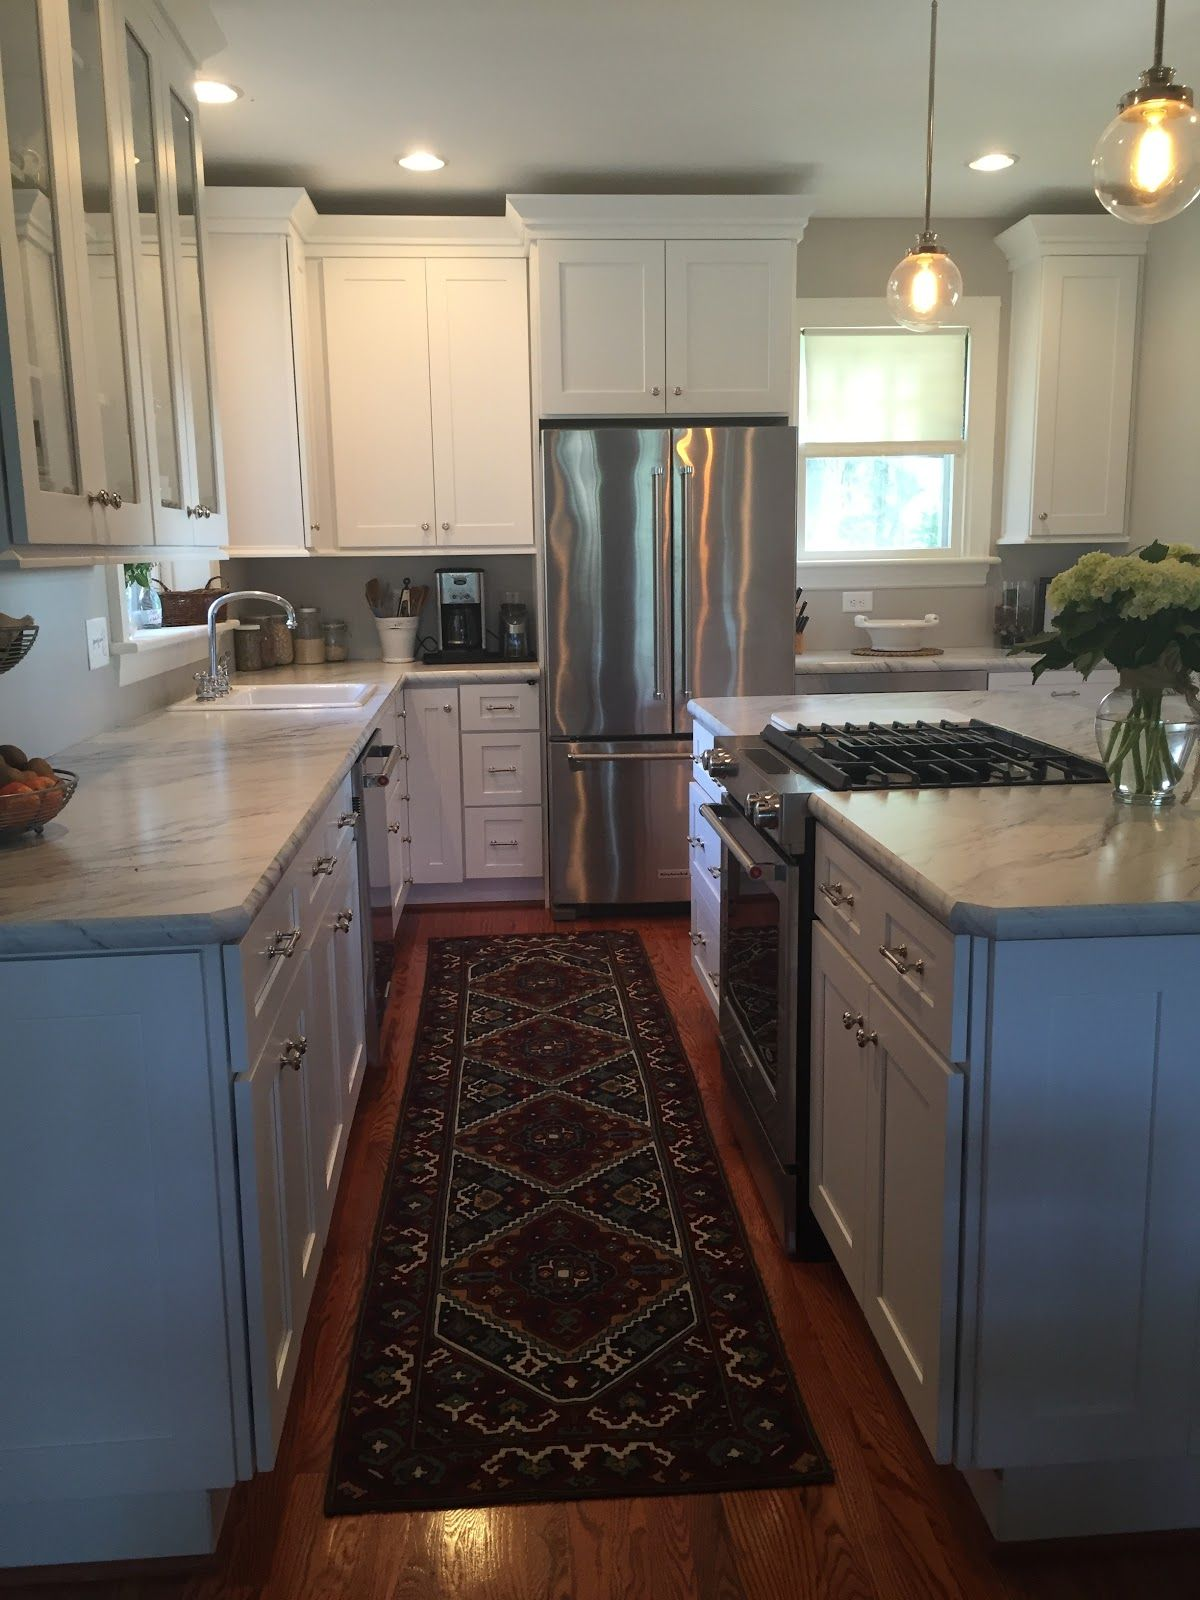 White Shaker Elite Kitchen Cabinets Remodeling By Lily Ann Cabinets Hello Friends Today Kitchen Cabinets Espresso Kitchen Cabinets Kitchen Cabinet Remodel